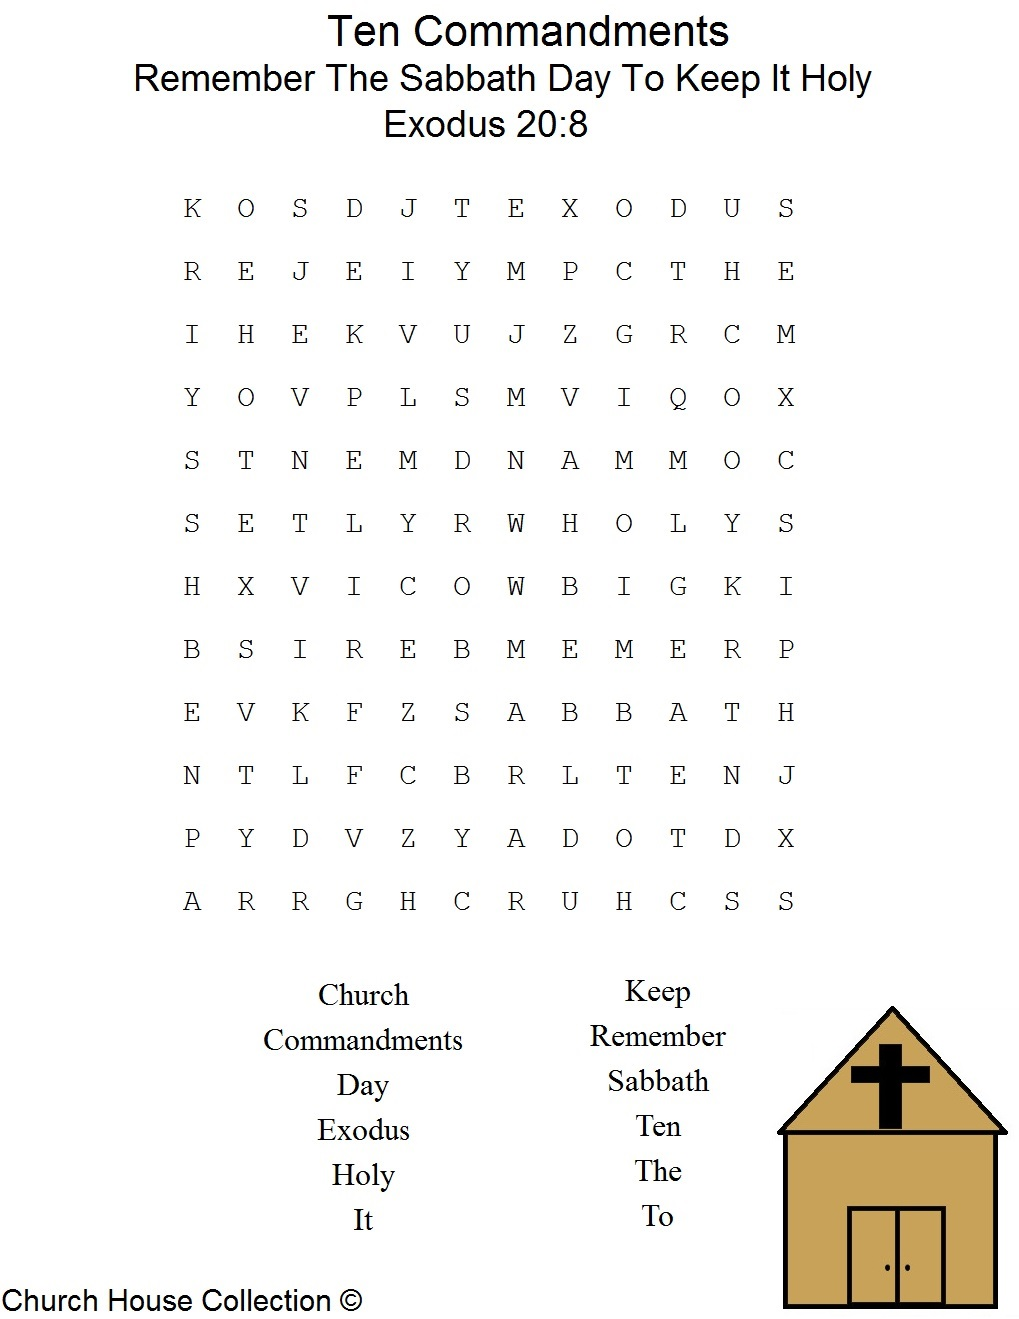 This Is A Free Printable Ten Commandments Word Find Puzzle For The